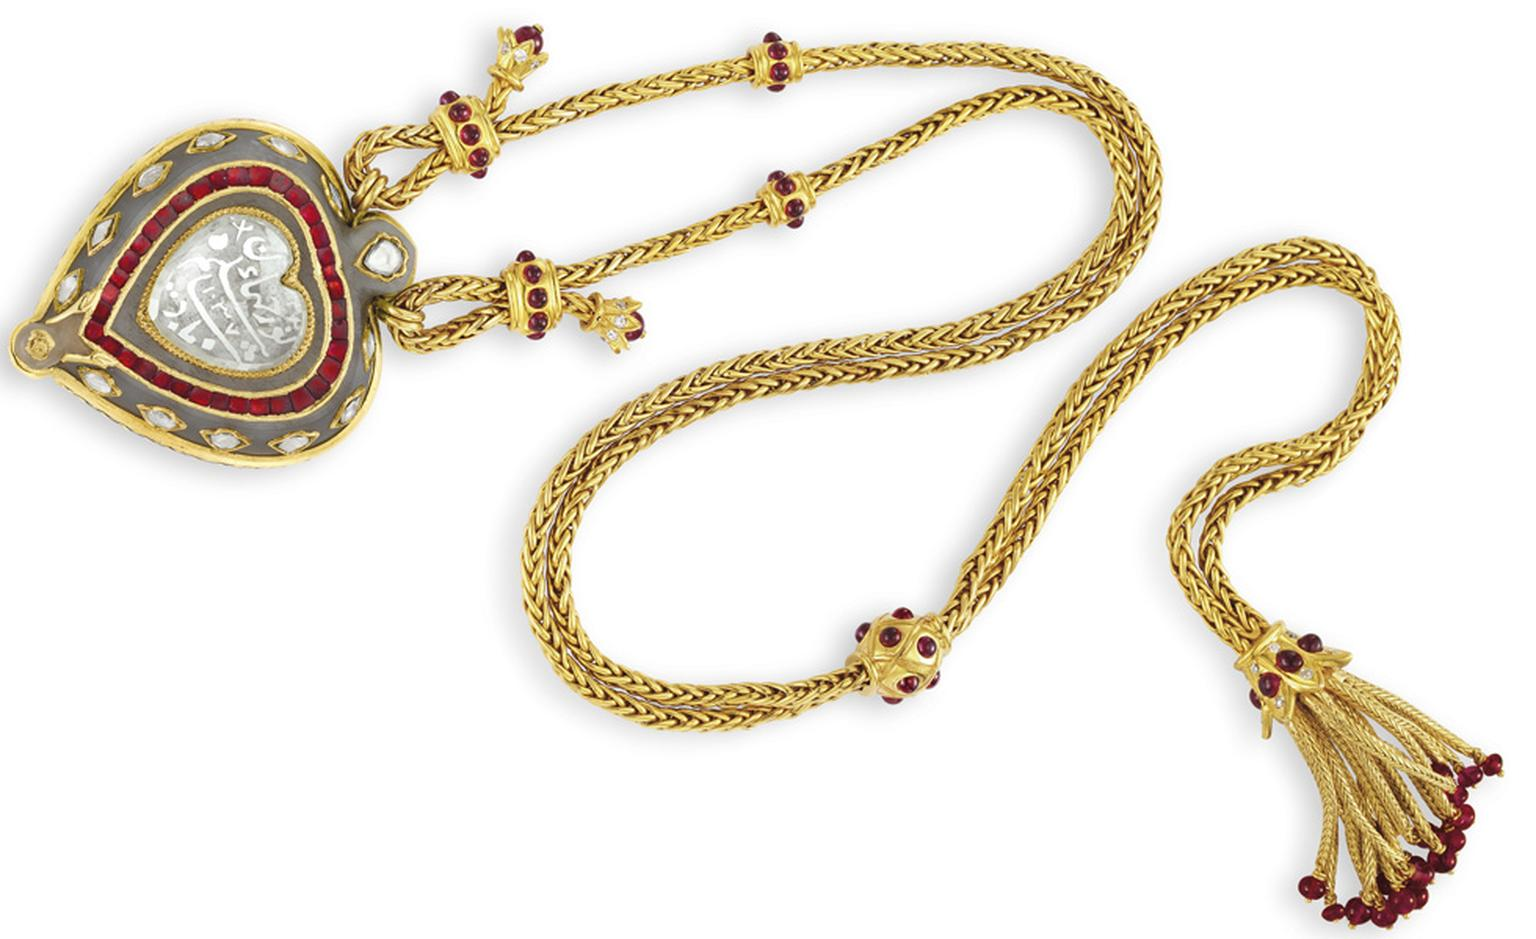 The Taj Mahal Diamond Circa 1627 – 28 Gold and Ruby Chain, by Cartier Gift from Richard Burton, for Elizabeth Taylor's 40th birthday, 1972 Estimate: $300,000 – 500,000